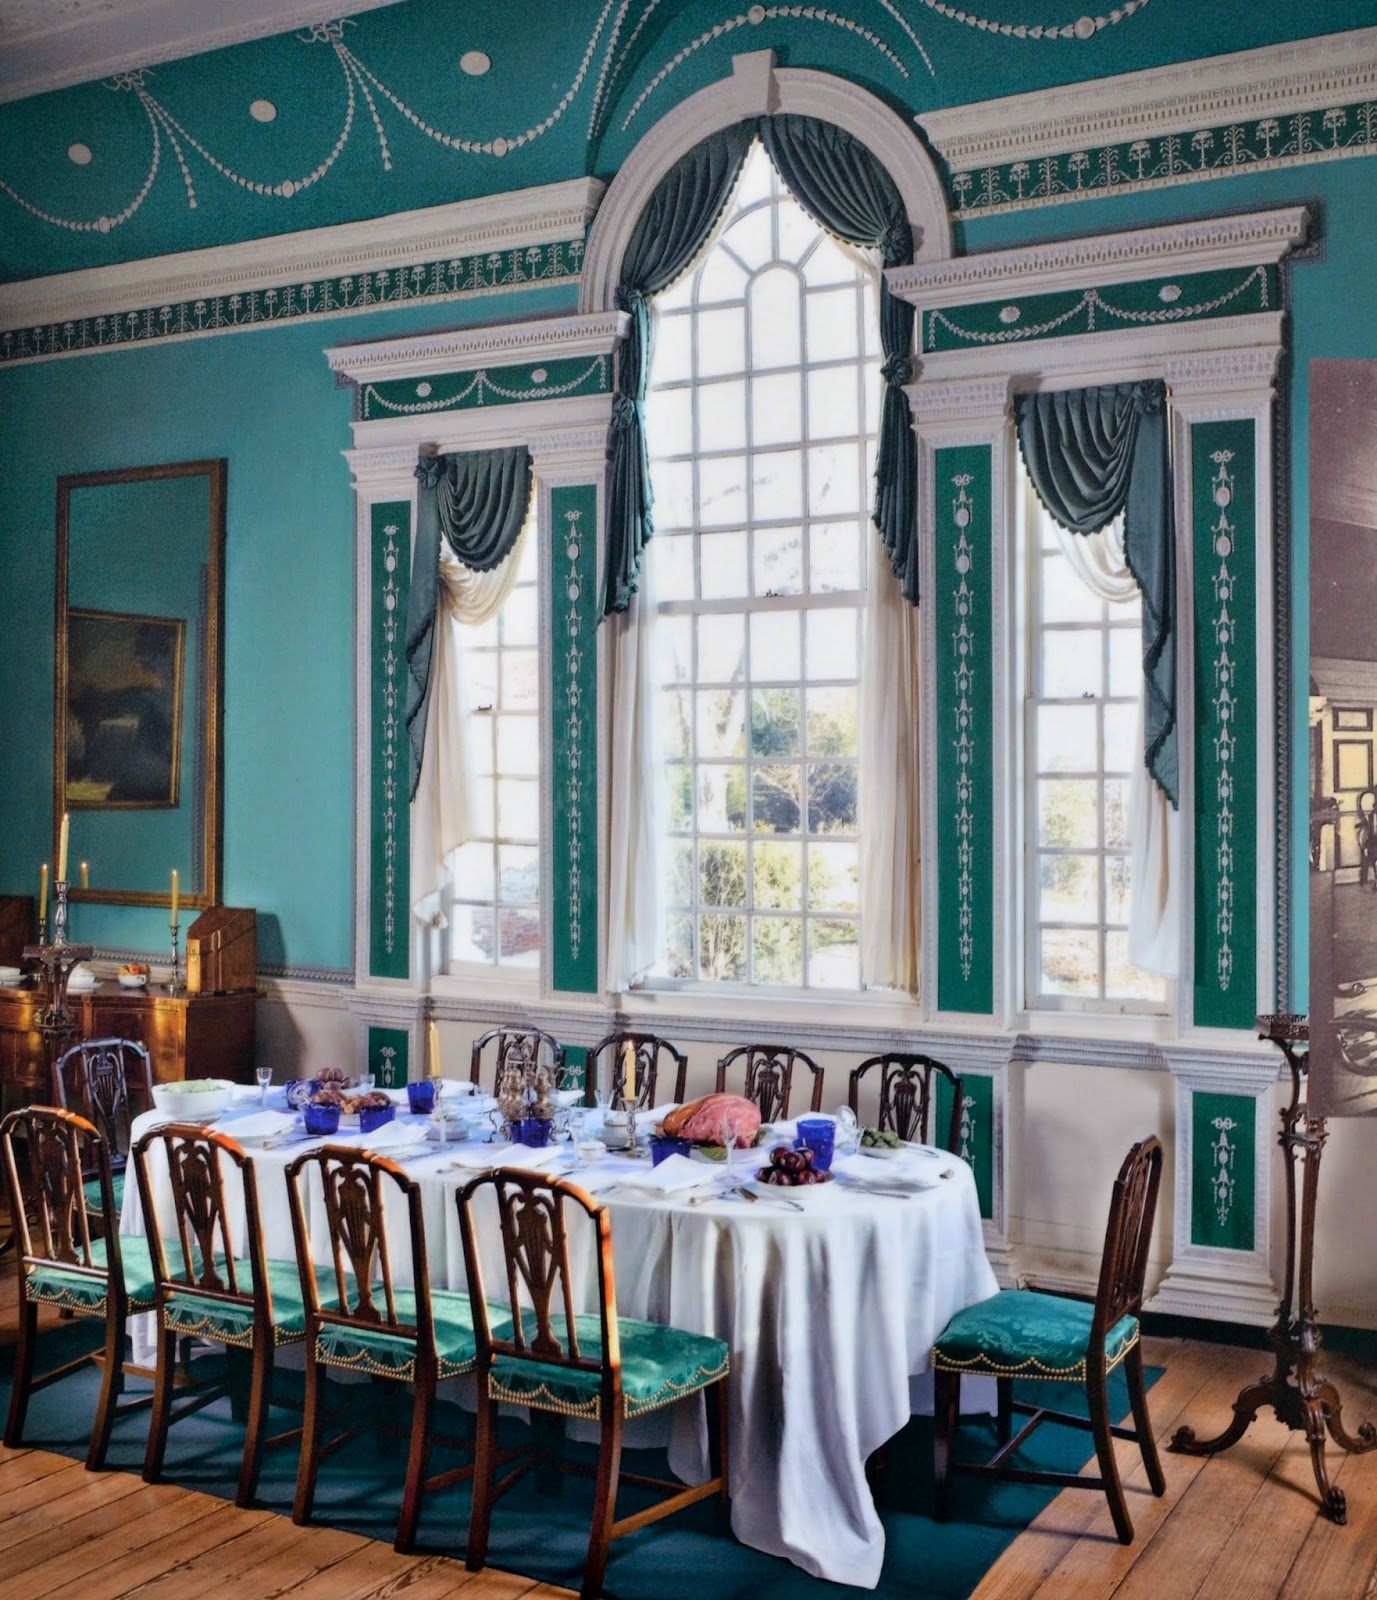 Mount Vernon Dining Room: Full Time RV Travels Of Jackie And Randy: Learning About